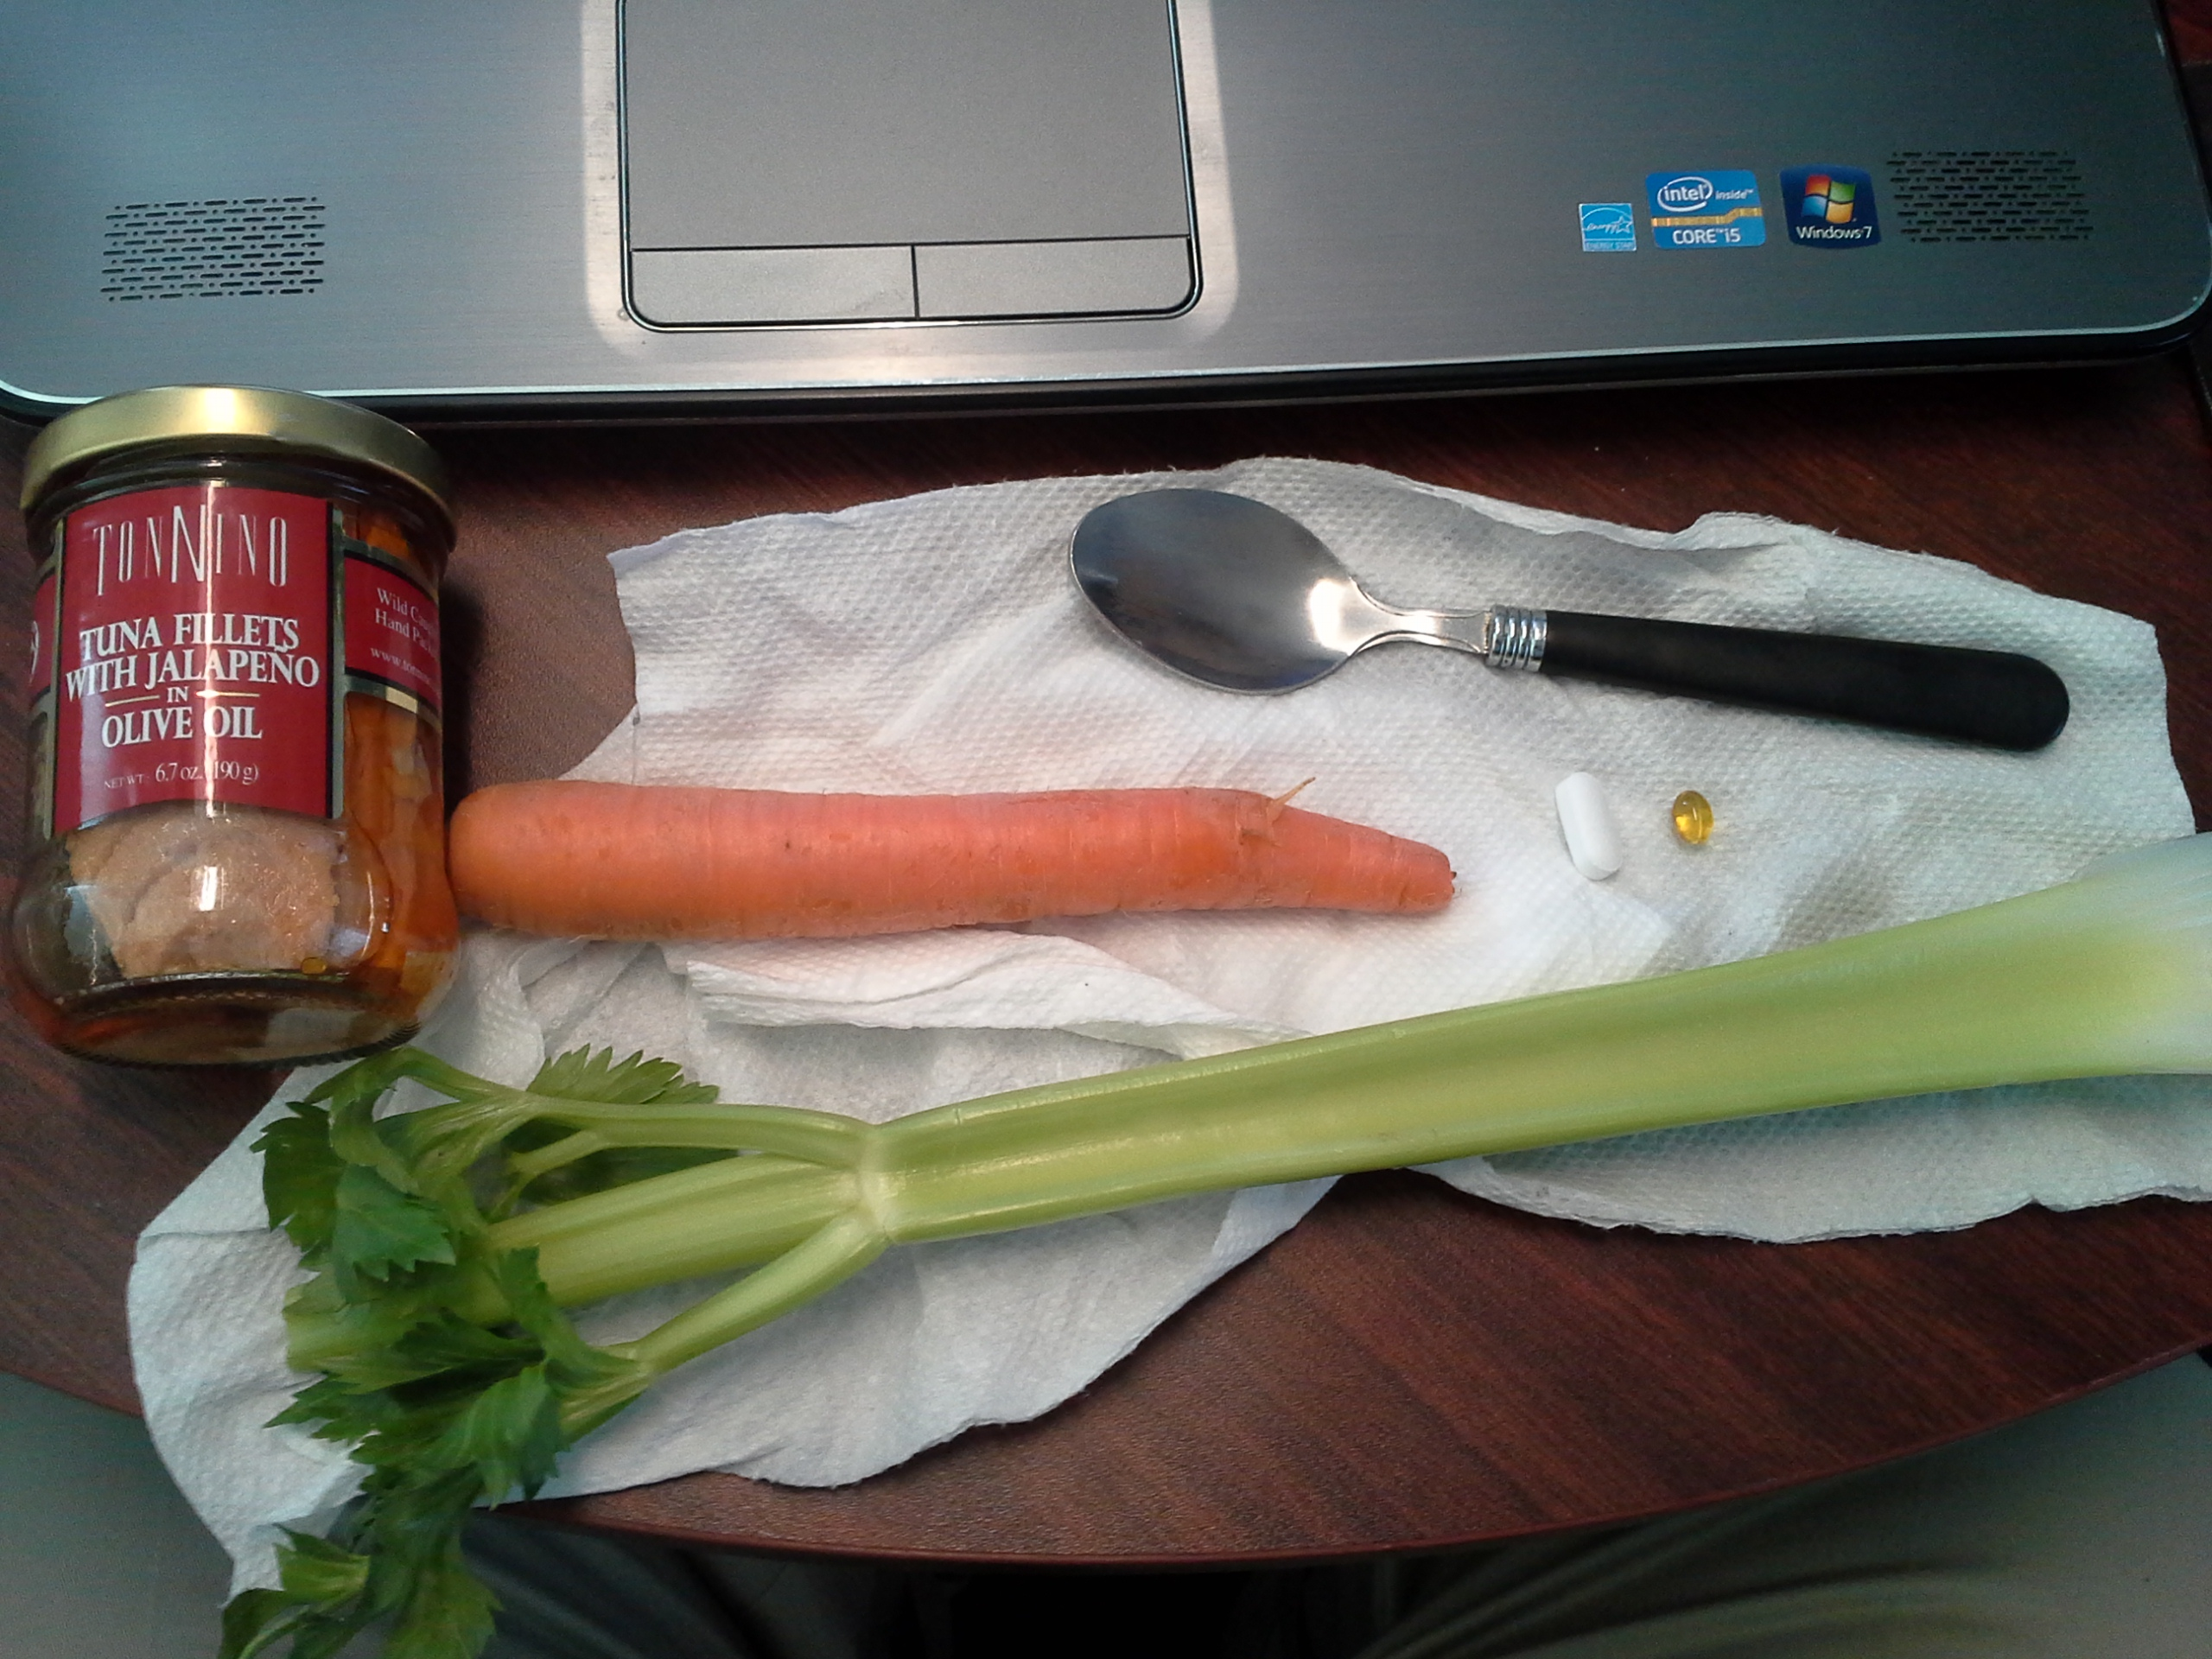 Lunch: 4:30 p.m. | 6.7 oz. tuna with jalapeños in olive oil, 1 carrot, 1 stalk celery, 5,000 IU Vitamin D capsule, Calcium/Magnesium/Zinc caplet